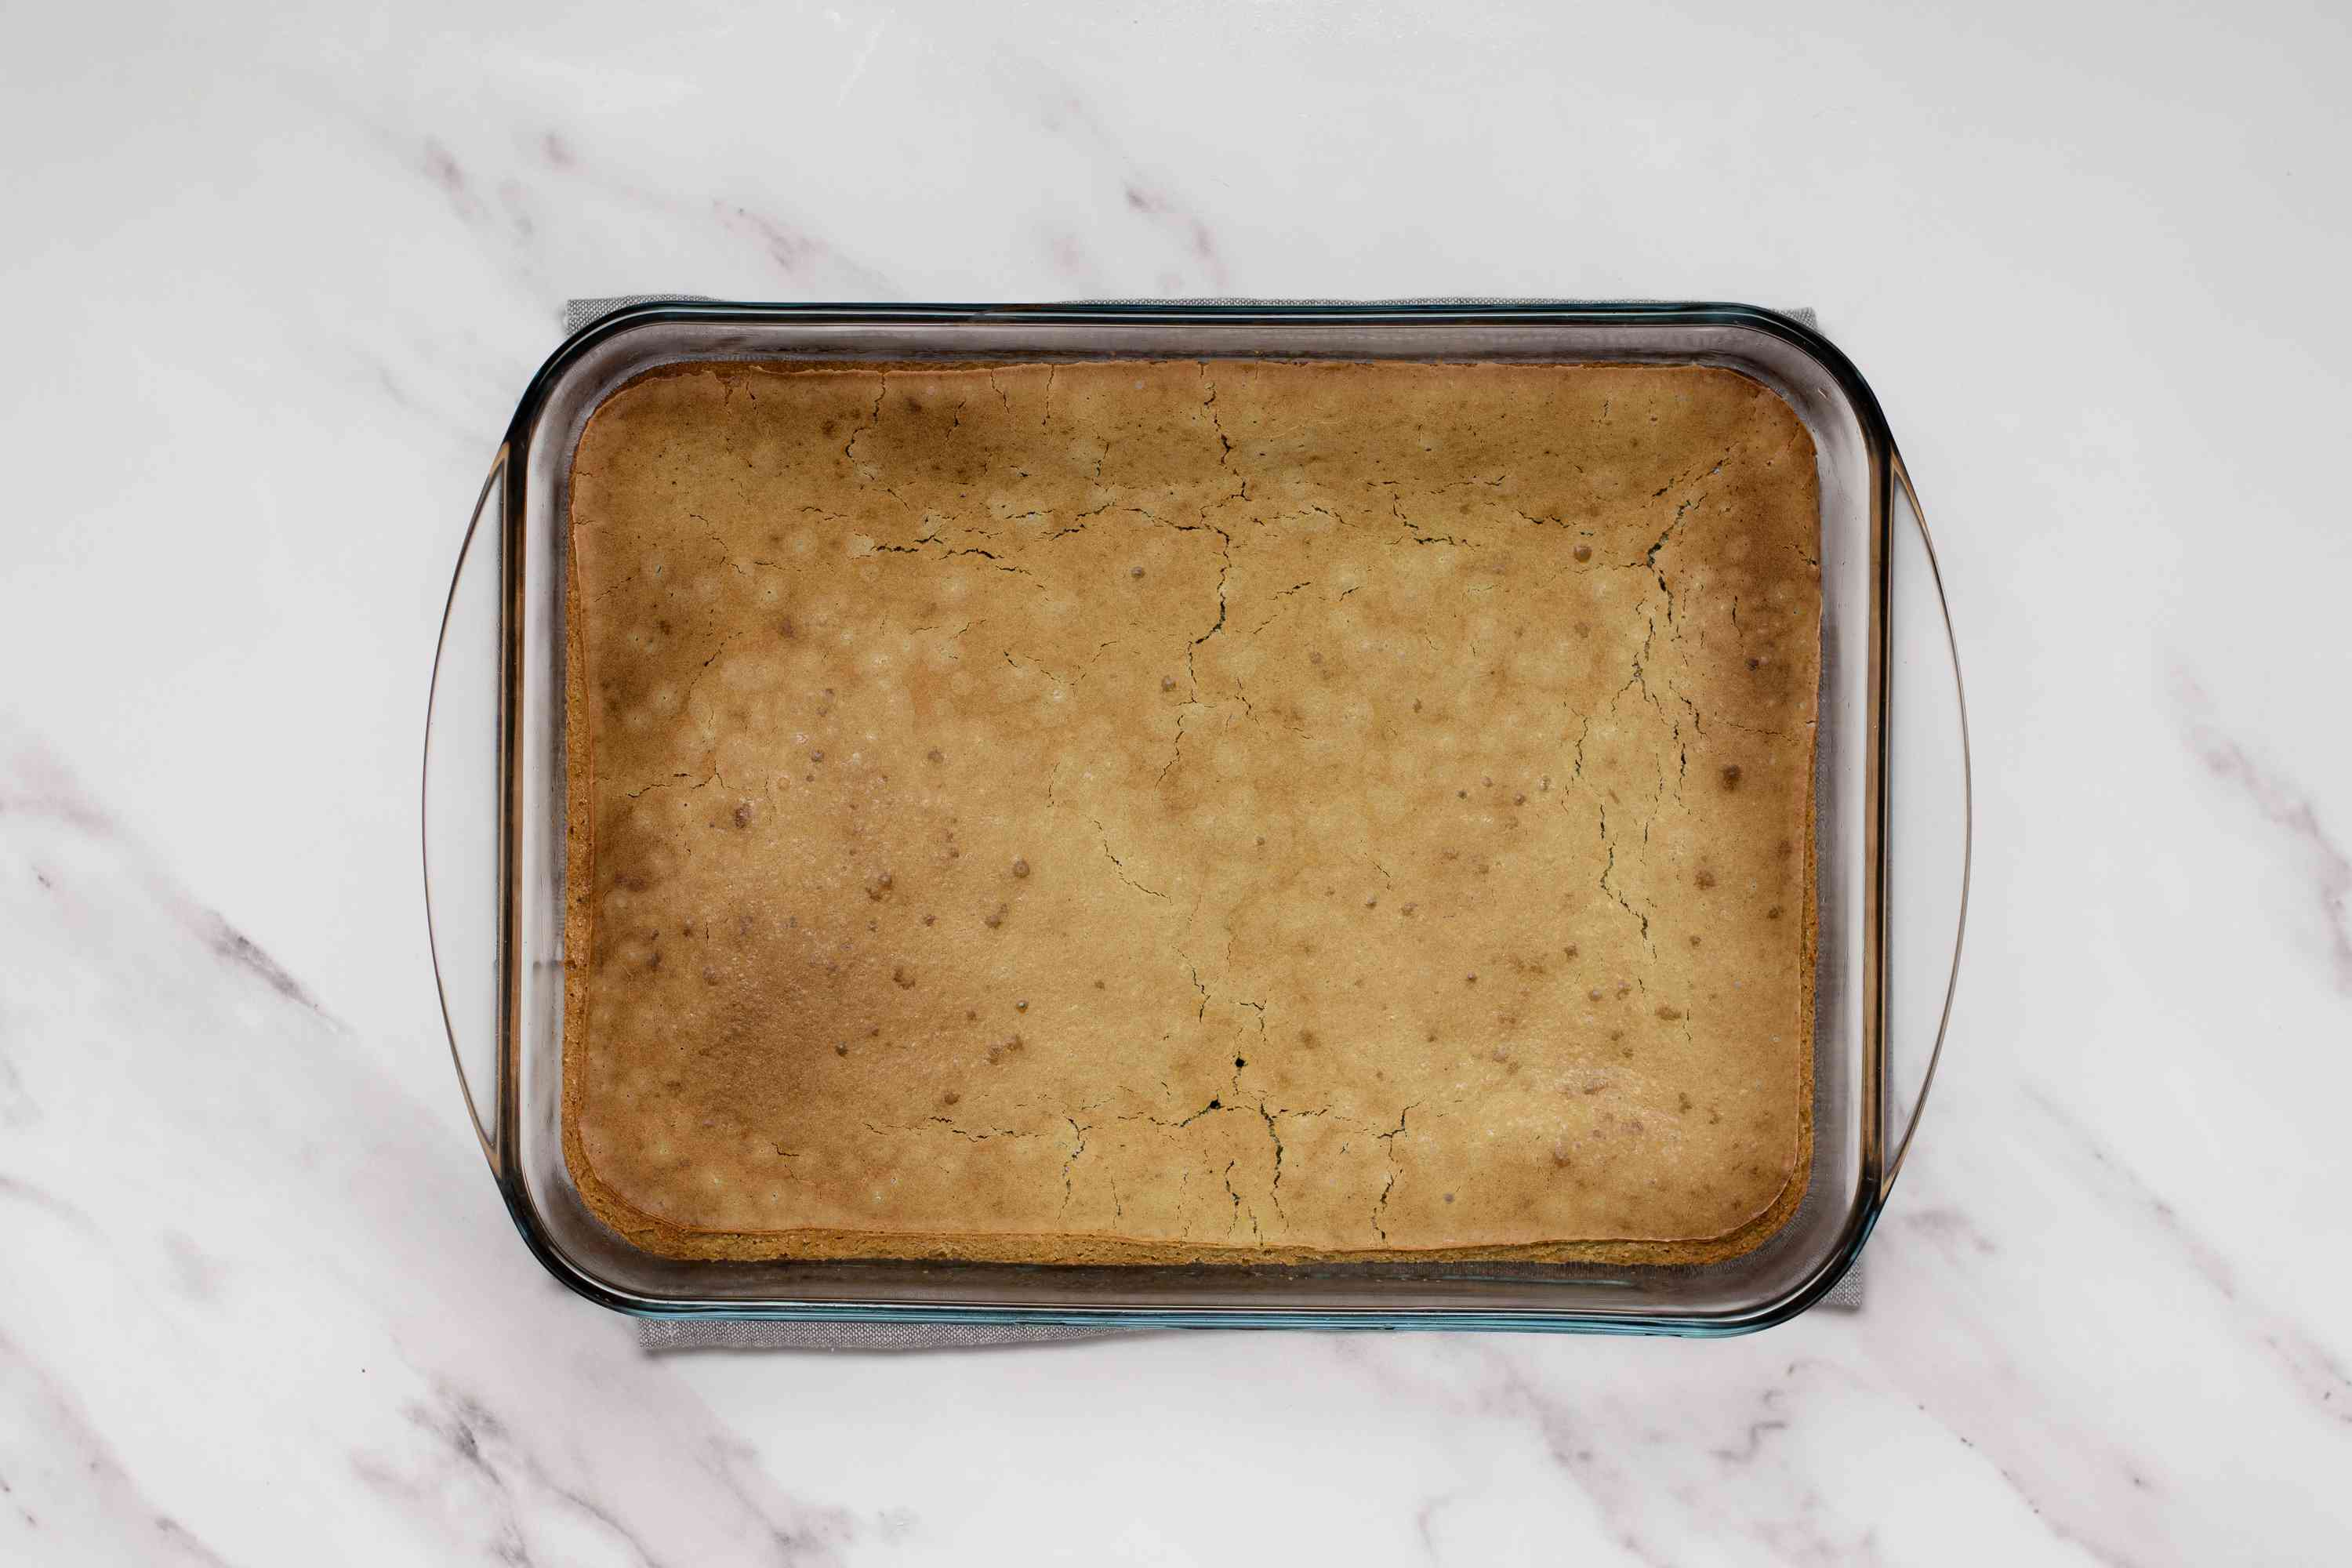 baked mochi in a baking dish